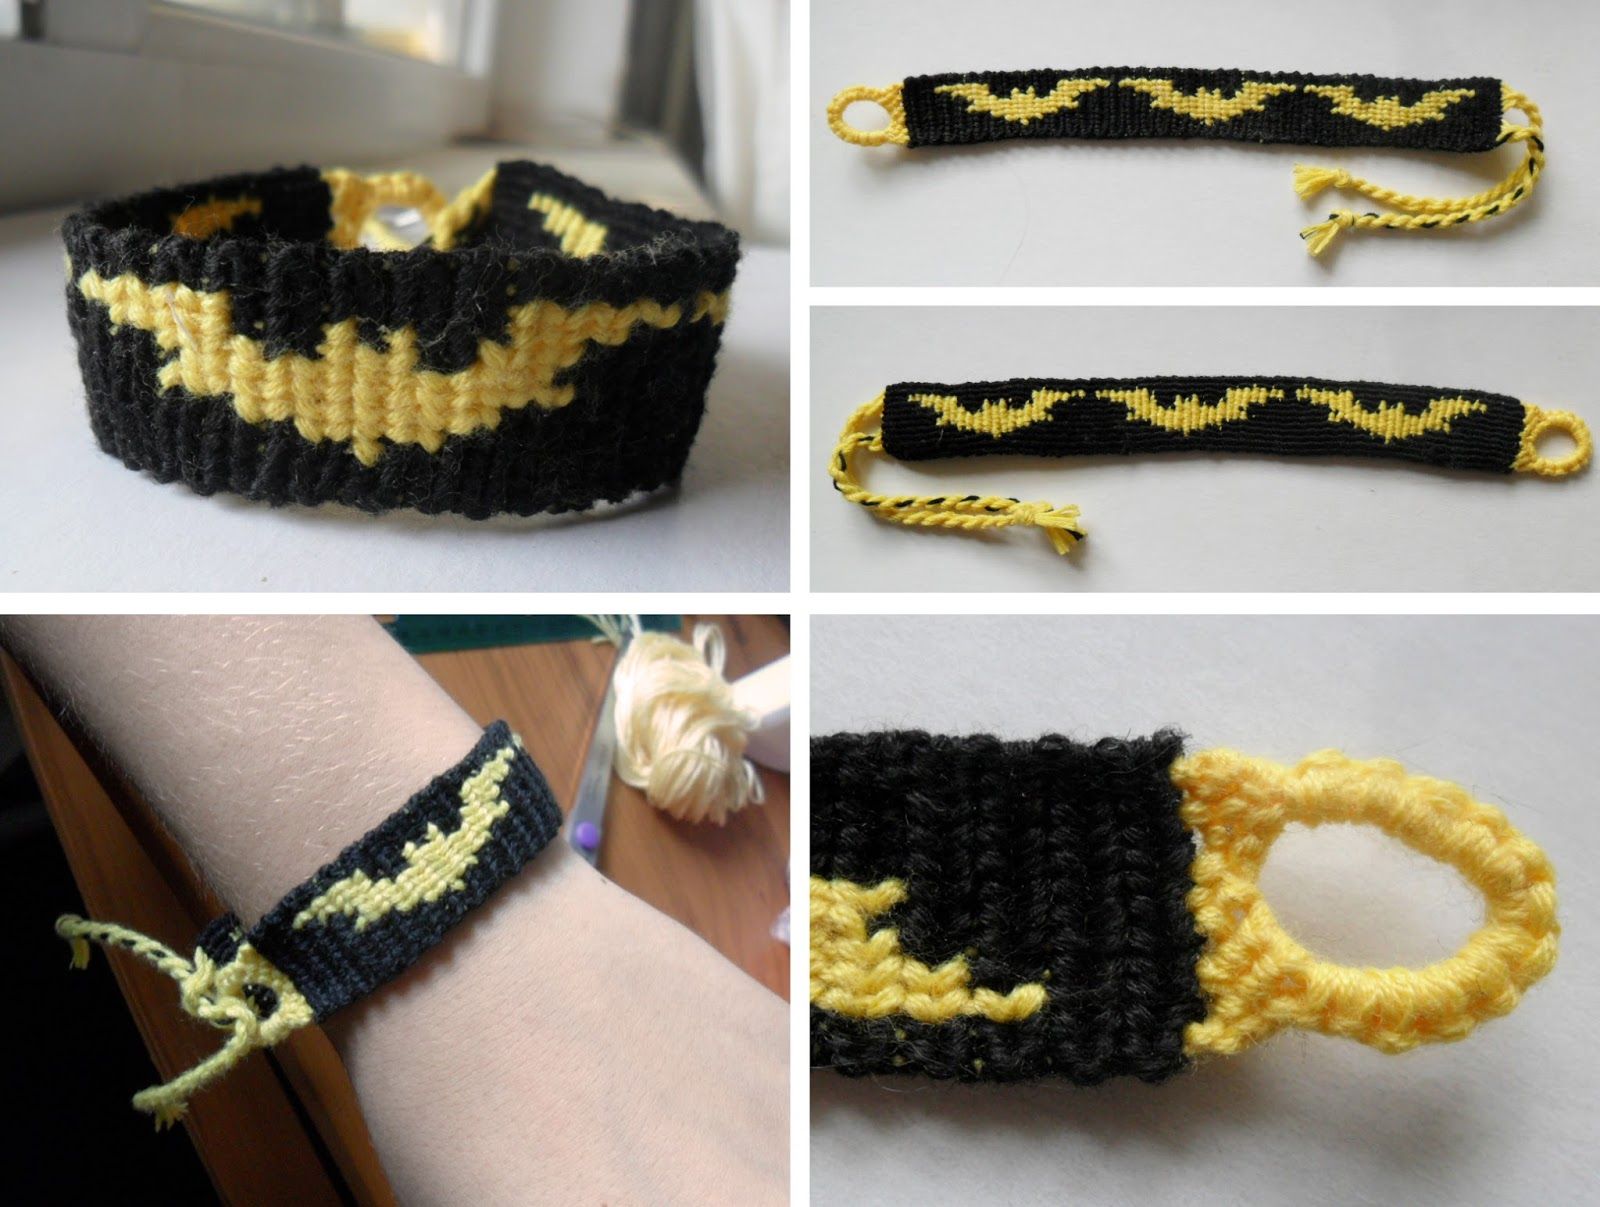 Photo of A47758 by KateSummer - friendship-bracelets.net.